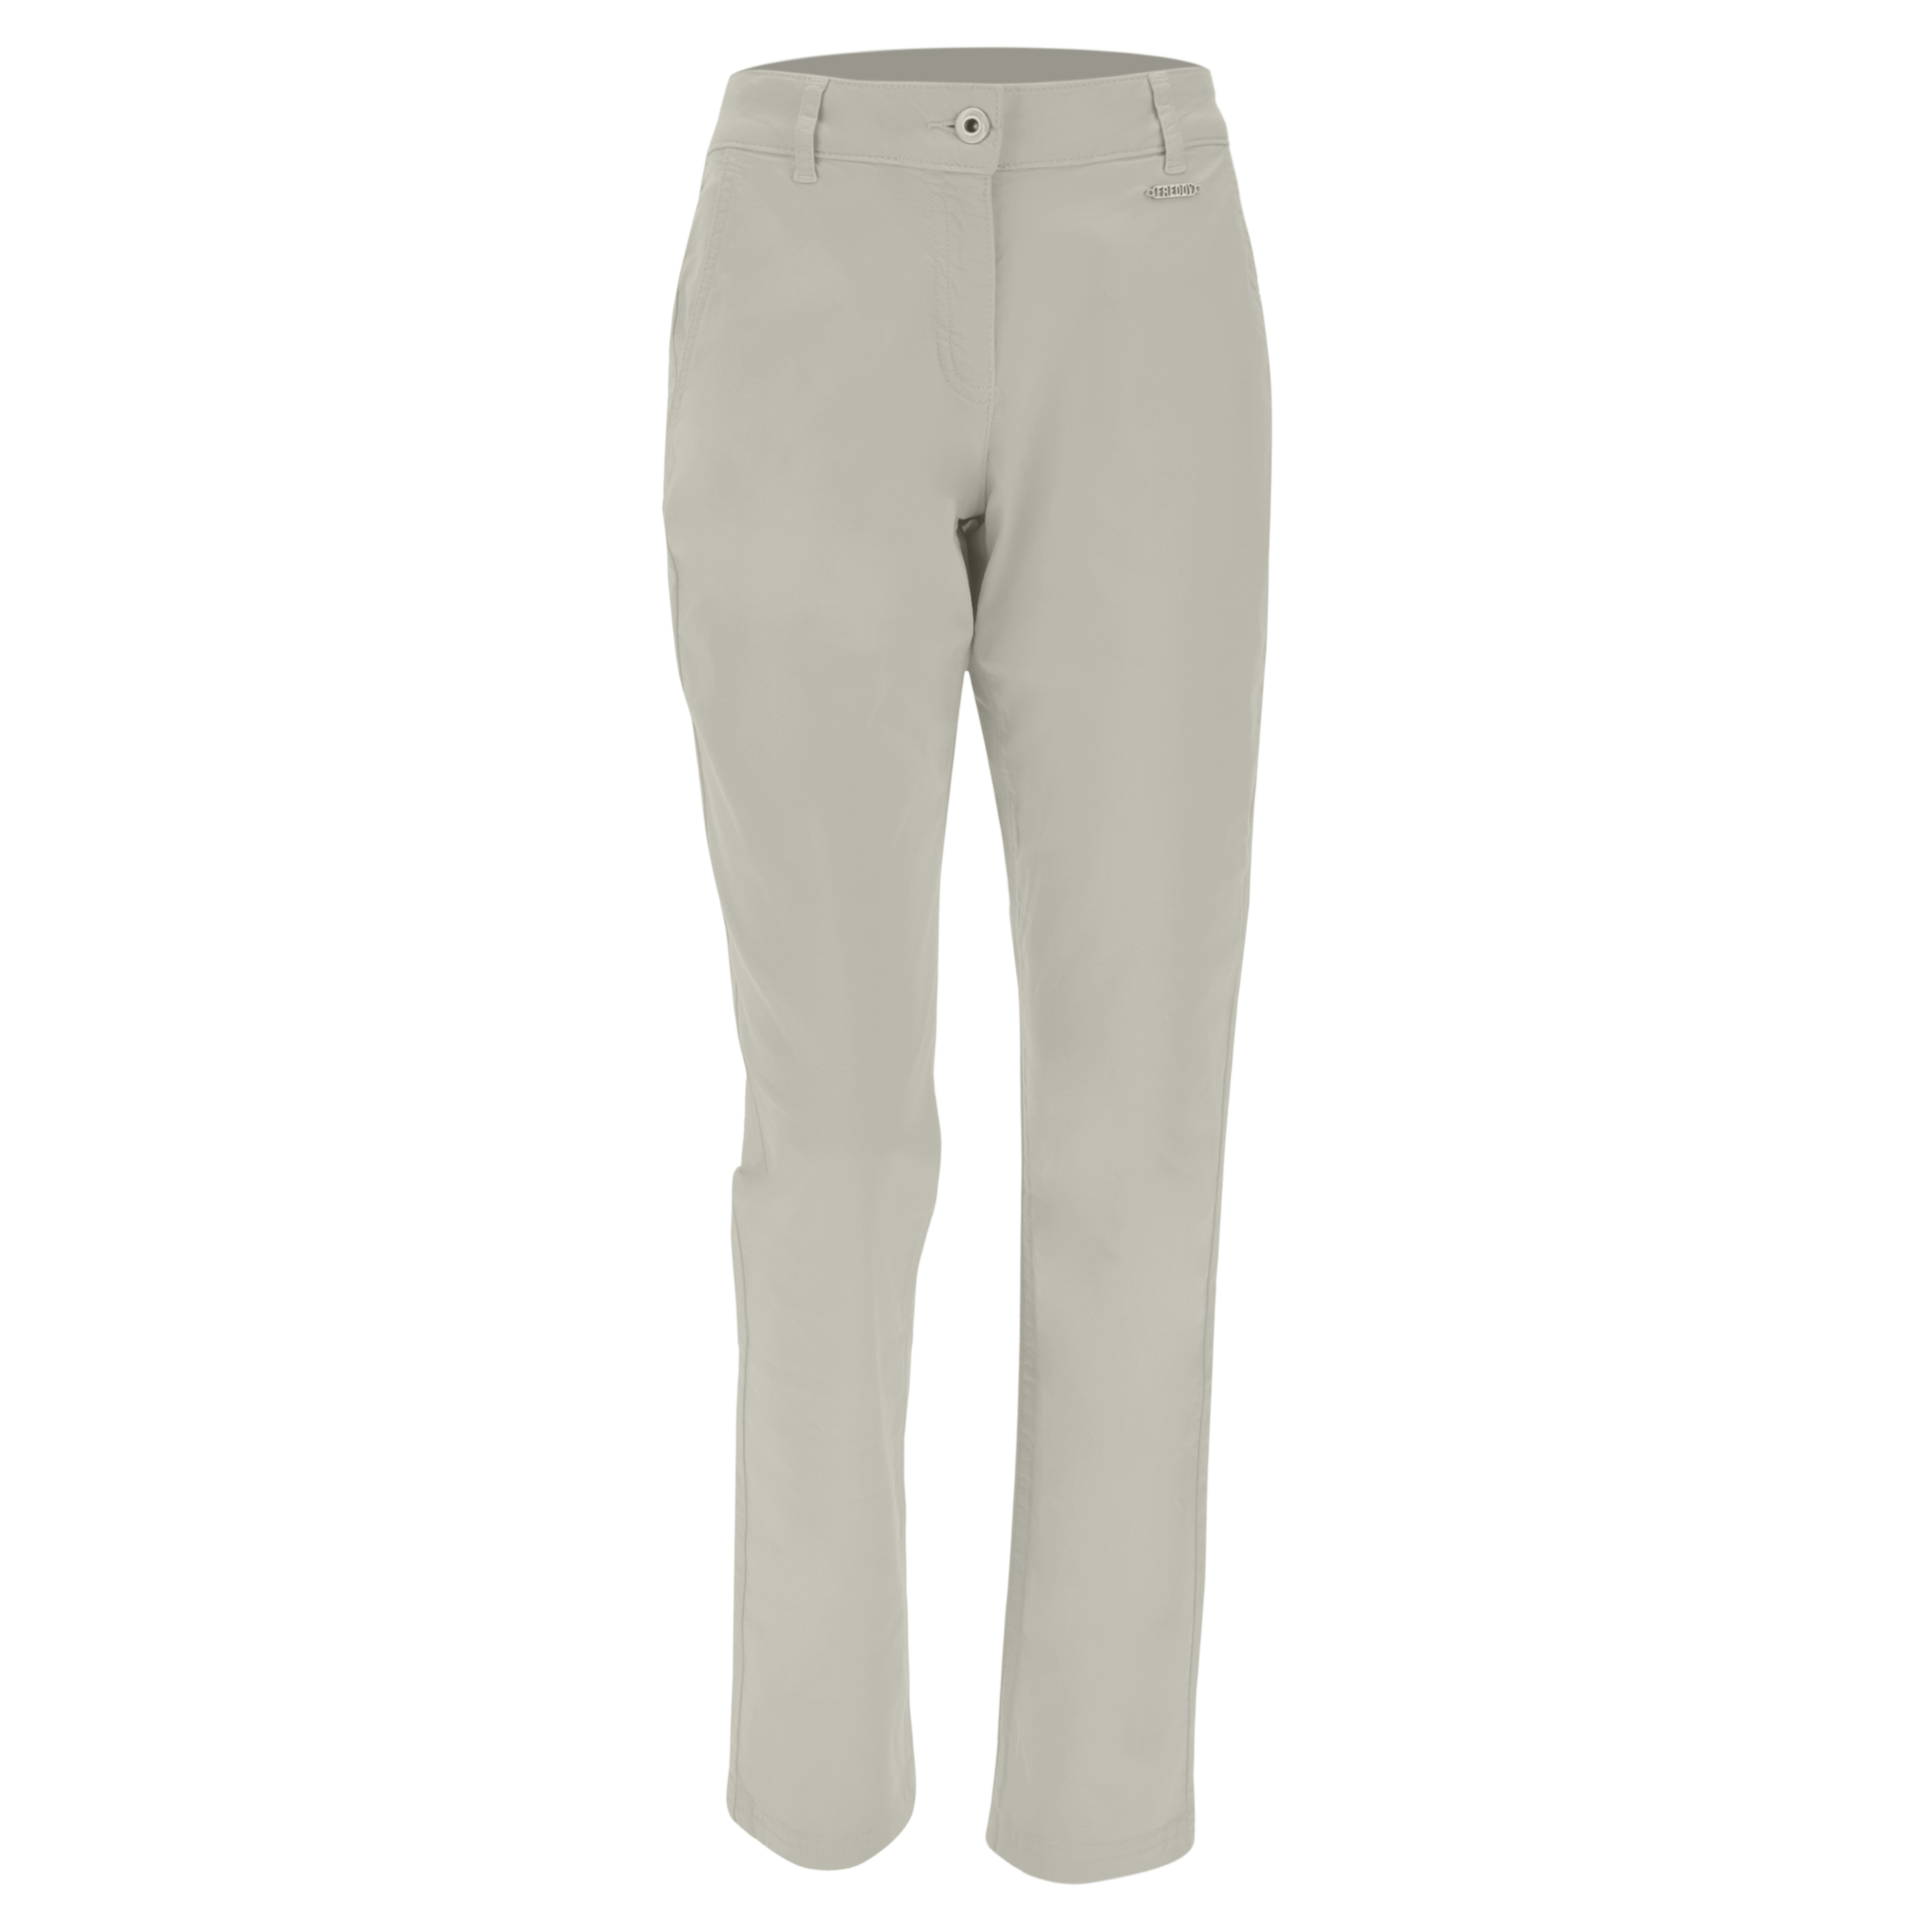 Pantaloni casual in french terry